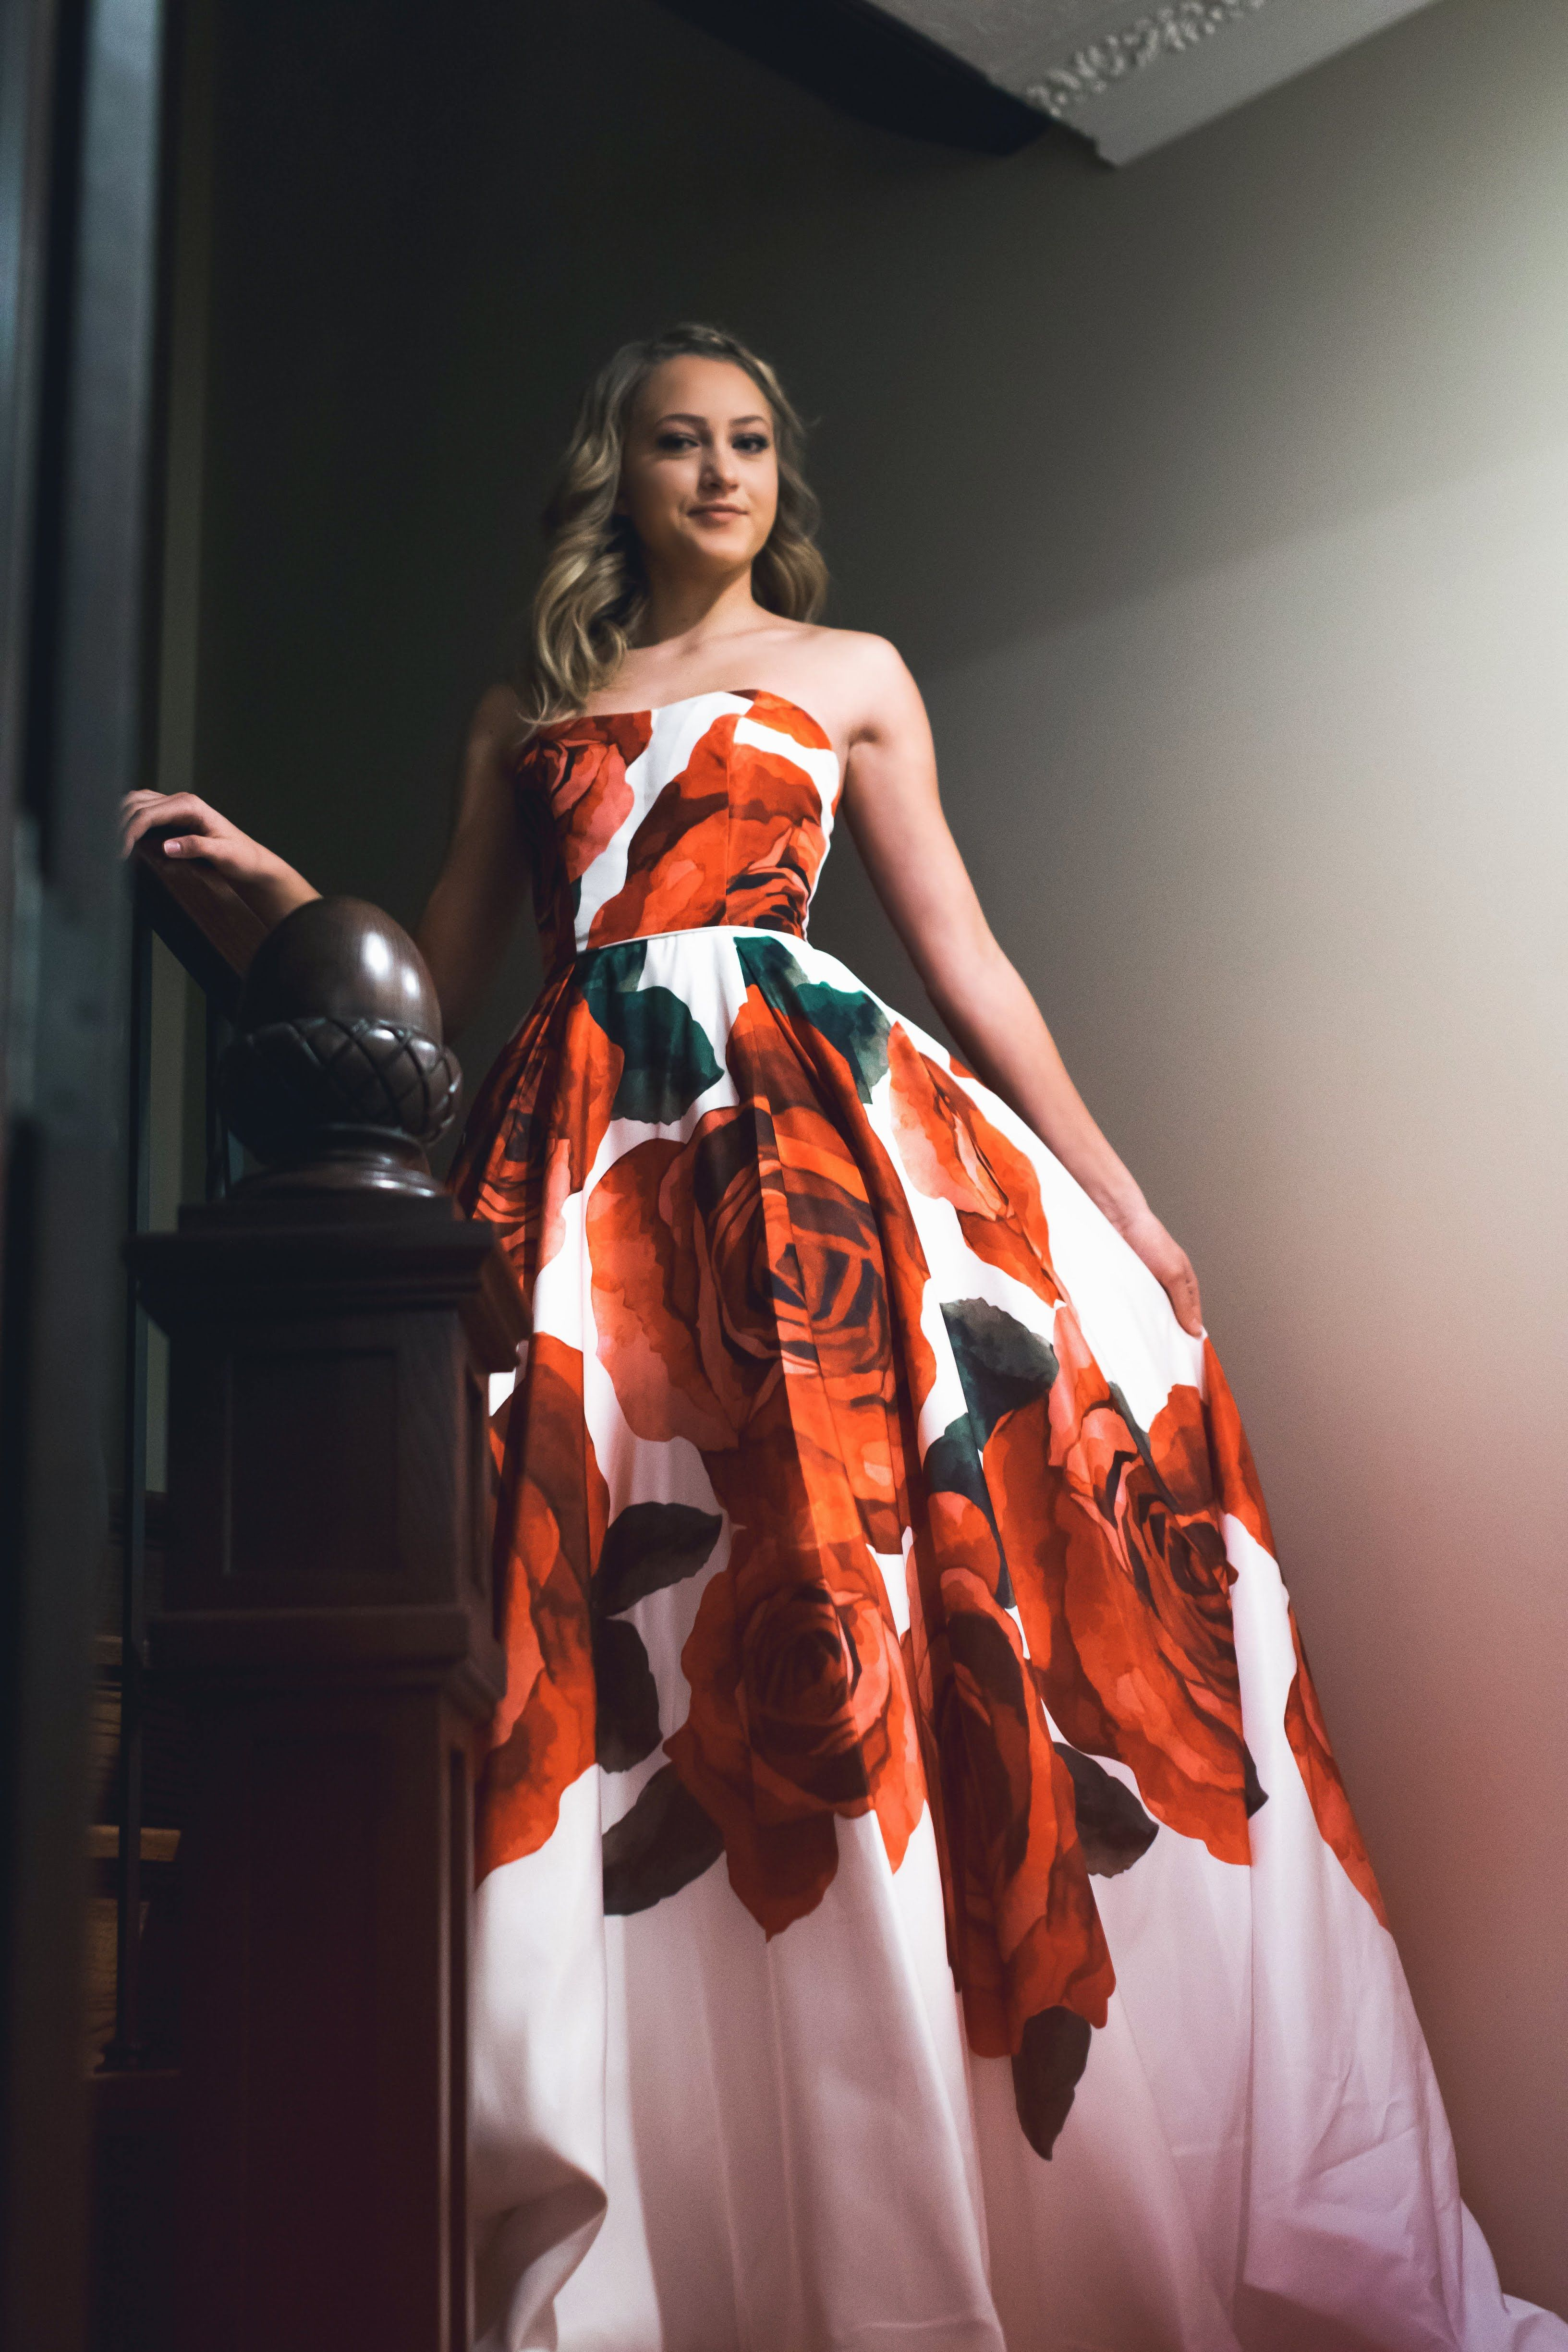 f9a7033f3d1 Sherri Hill Strapless Floral Print Red Rose Ballgown Ypsilon Dresses Prom  Pageant Evening Wear SLC Utah Dress Store Sweethearts Homecoming School  Dance ...